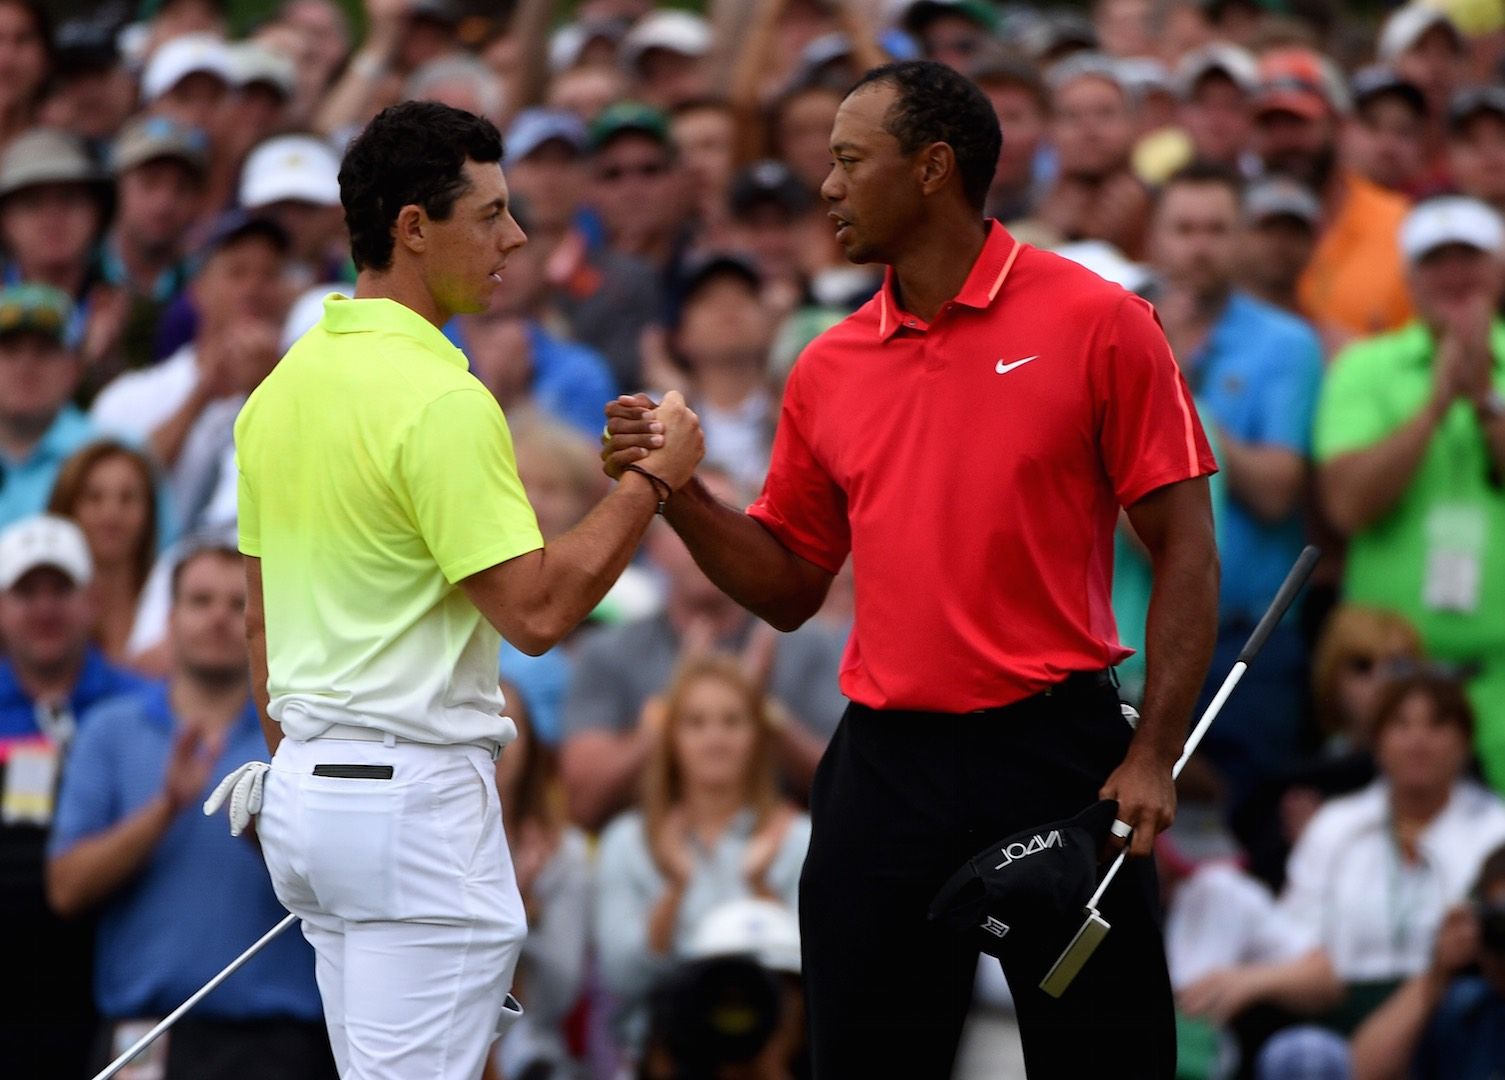 Rory McIlroy questions Tiger Wood's lifestyle